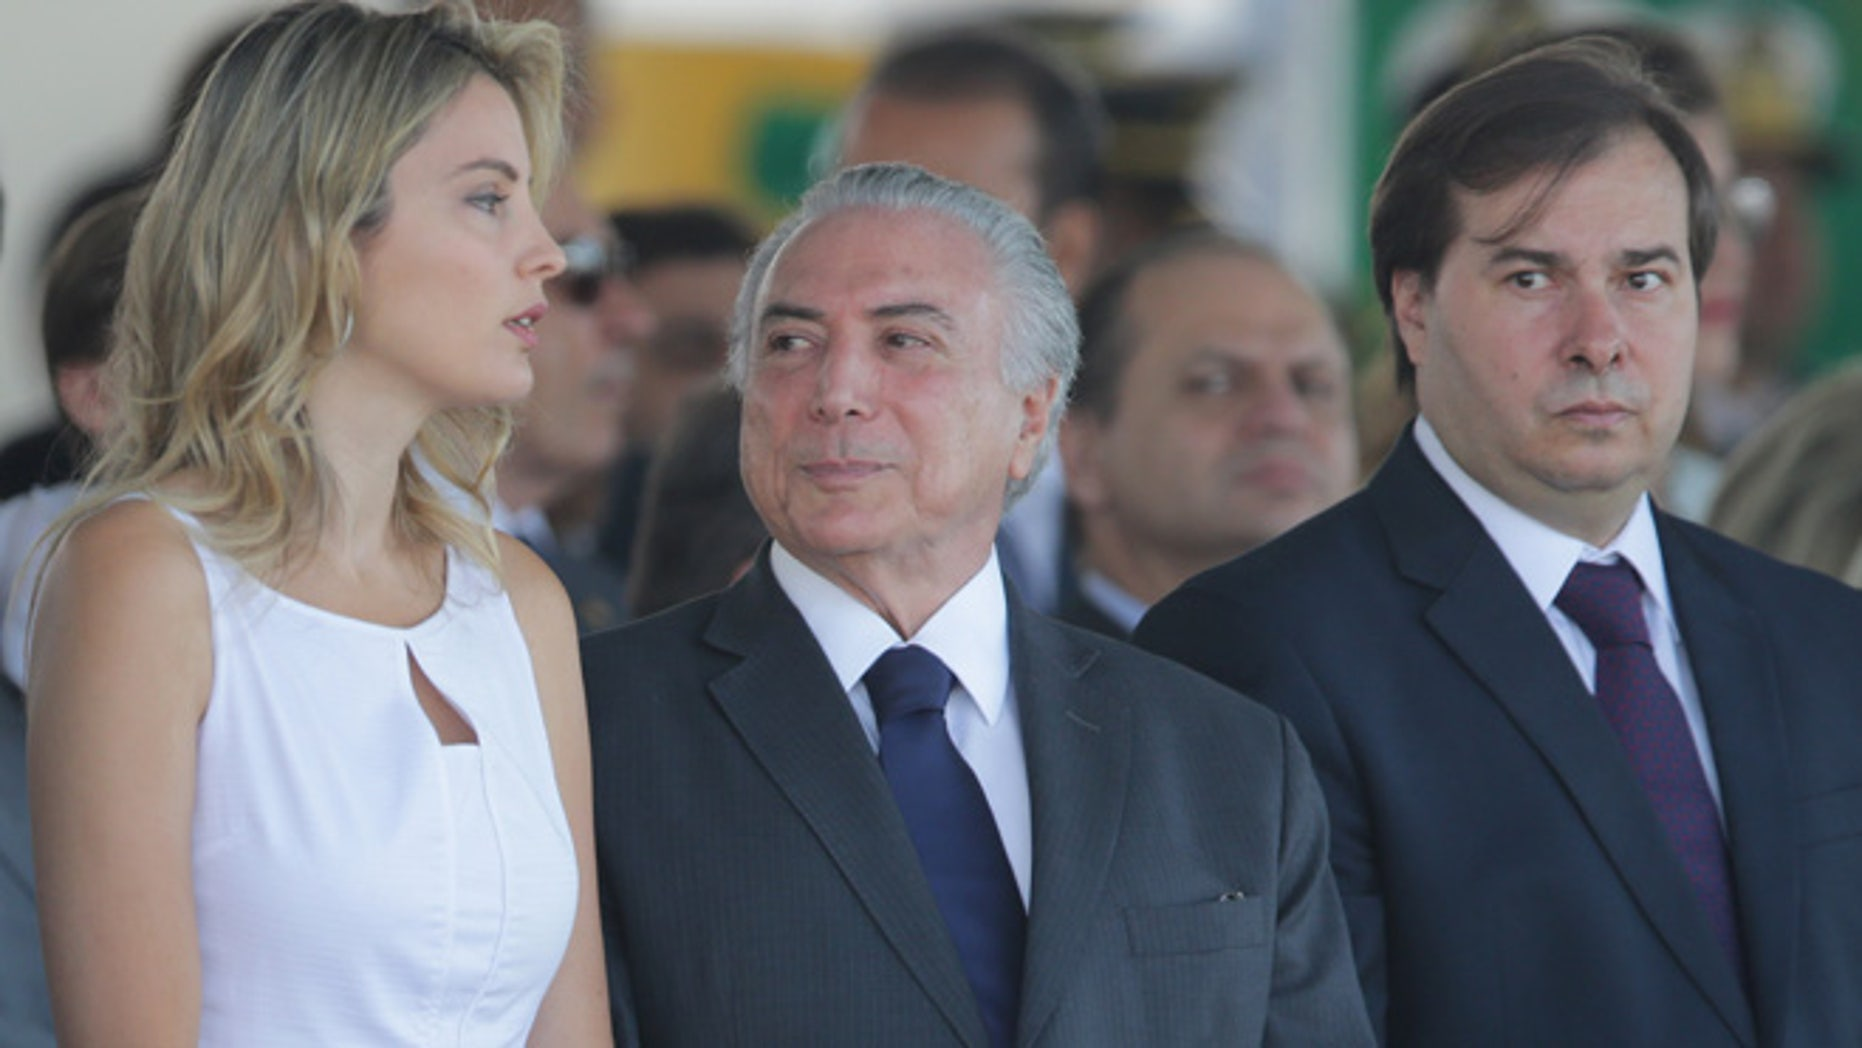 Brazil's President Michel Temer, center, talks with his wife Marcela Temer, during an Independence Day military parade in Brasilia, Brazil, Wednesday, Sept. 7, 2016. Pictured right is Lower House Speaker Rodrigo Maia. (AP Photo/Eraldo Peres)